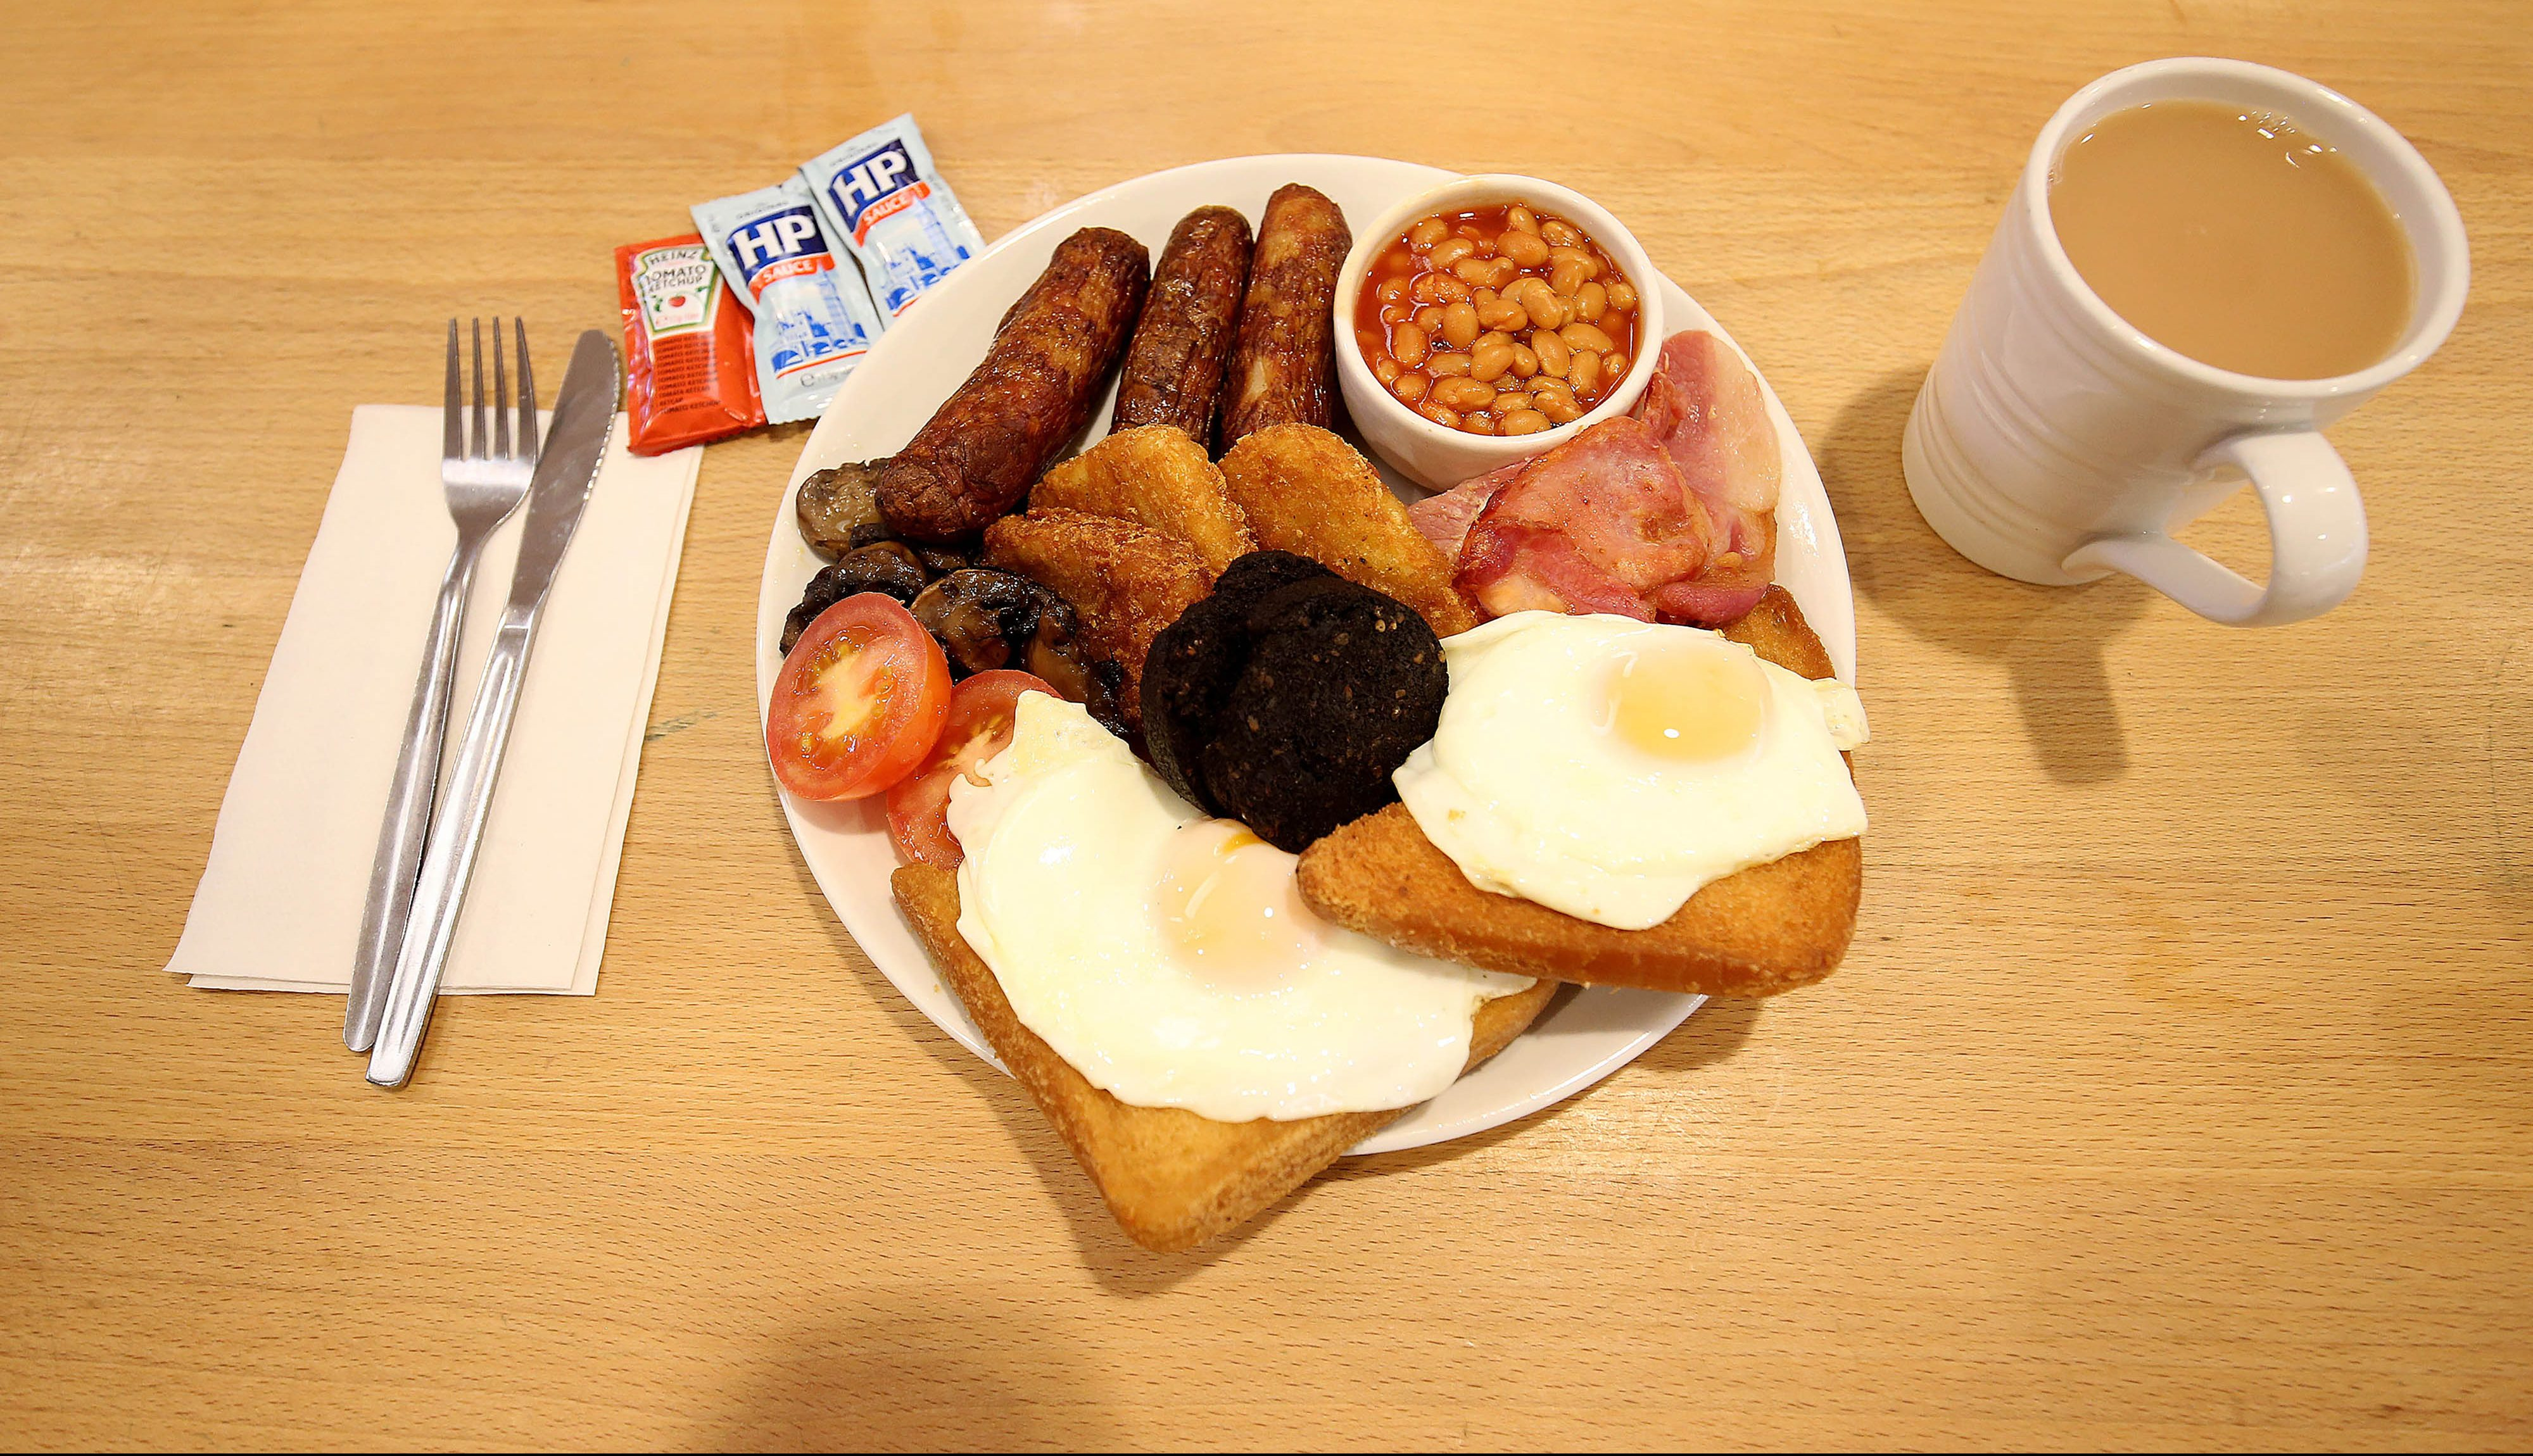 Morrisons shoppers can get a huge 19-piece fry-up for £5 on Black Friday